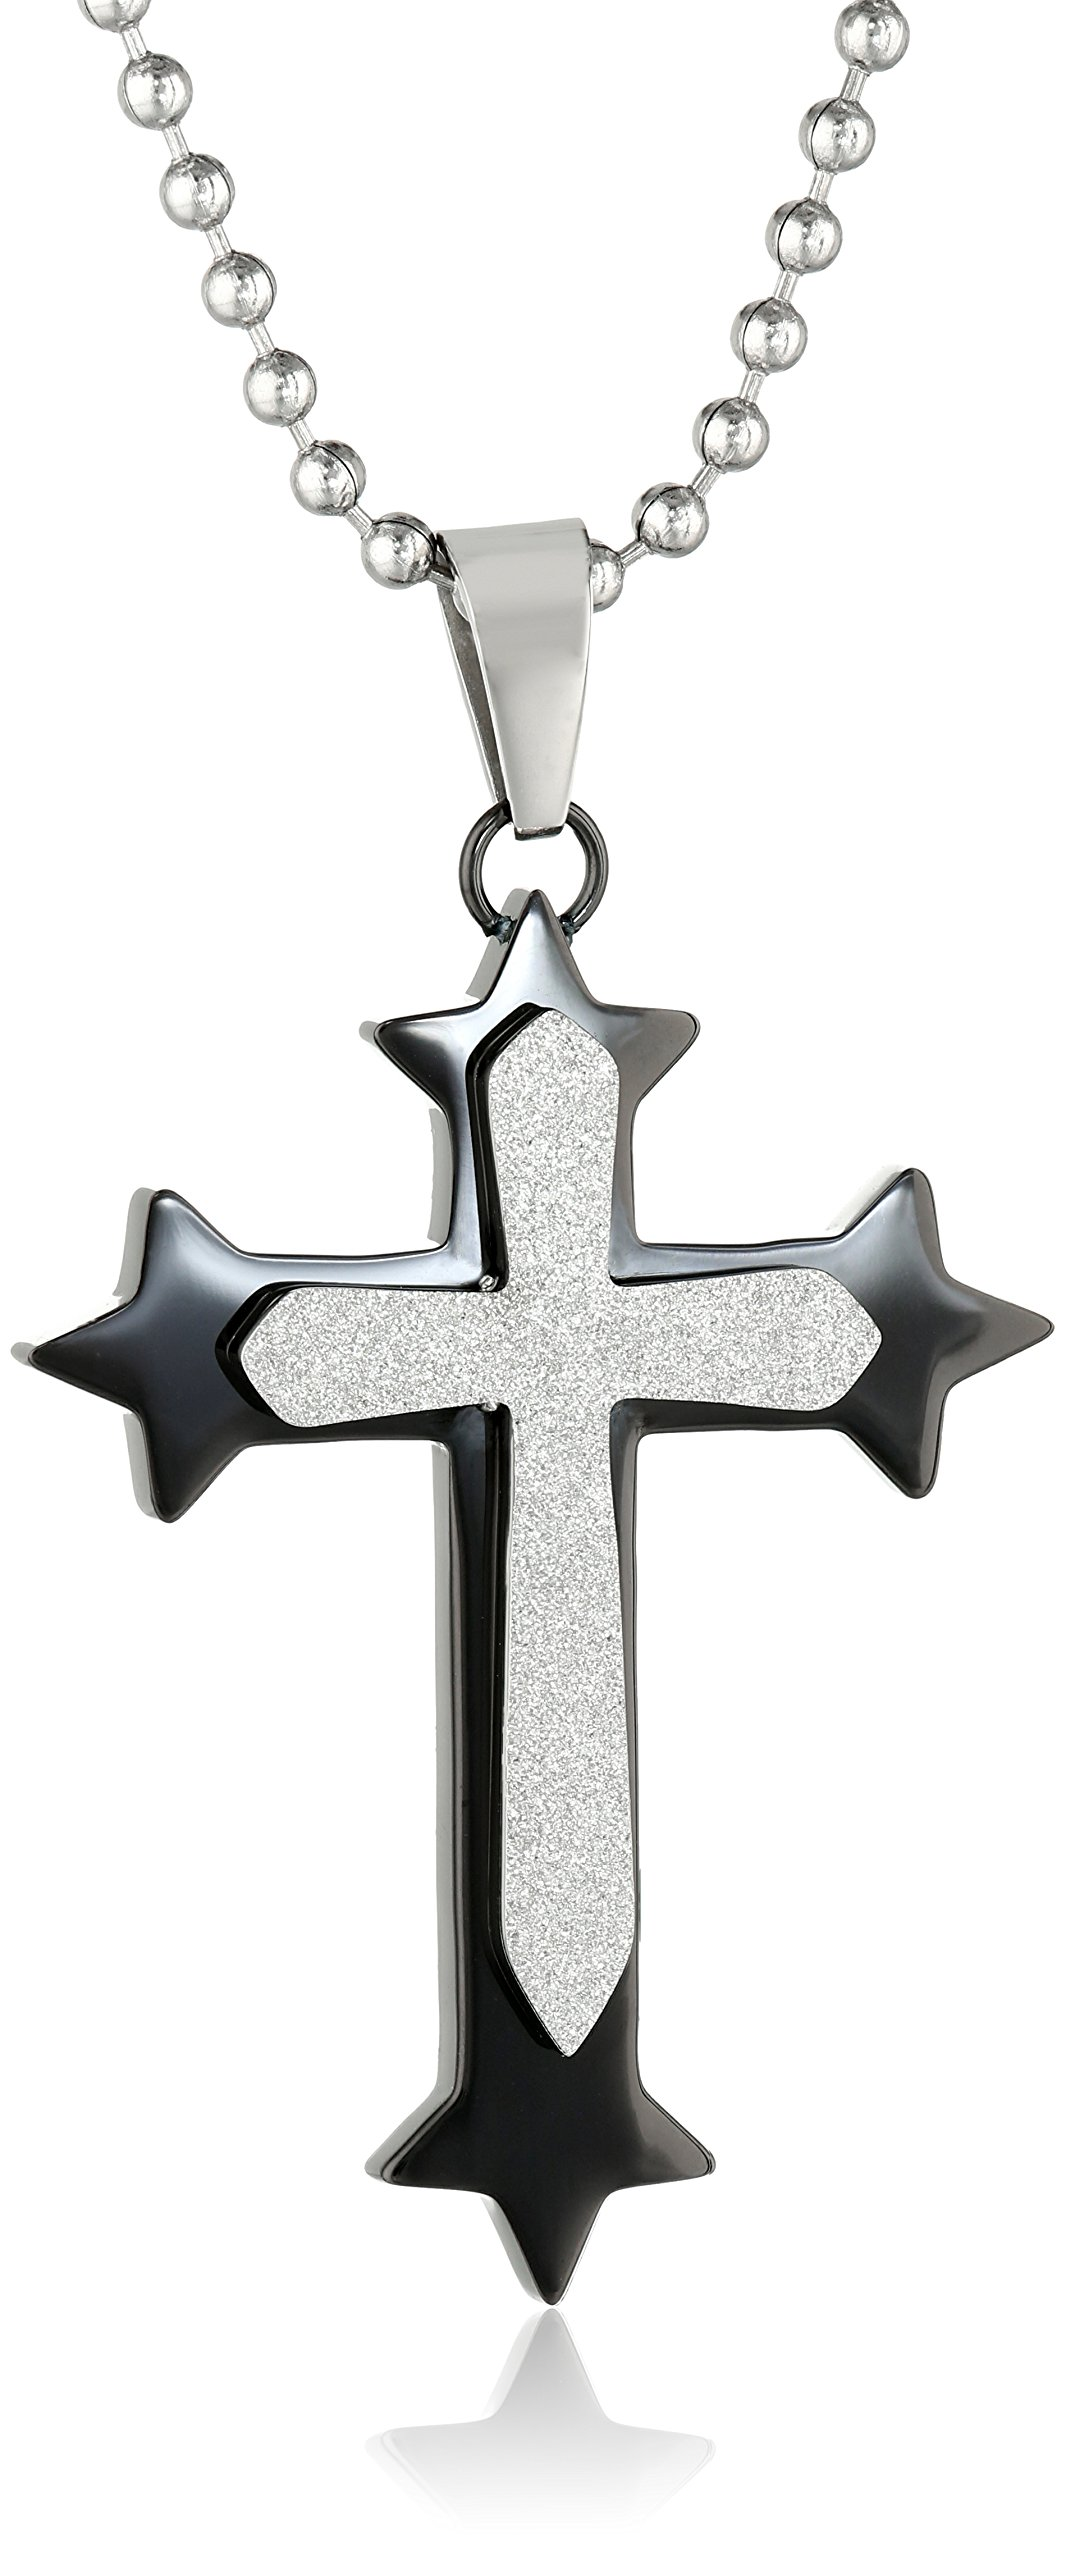 Cold Steel Men's Stainless Steel Black Immersion Plated Diamond Cut Cross Pendant Necklace, 48''